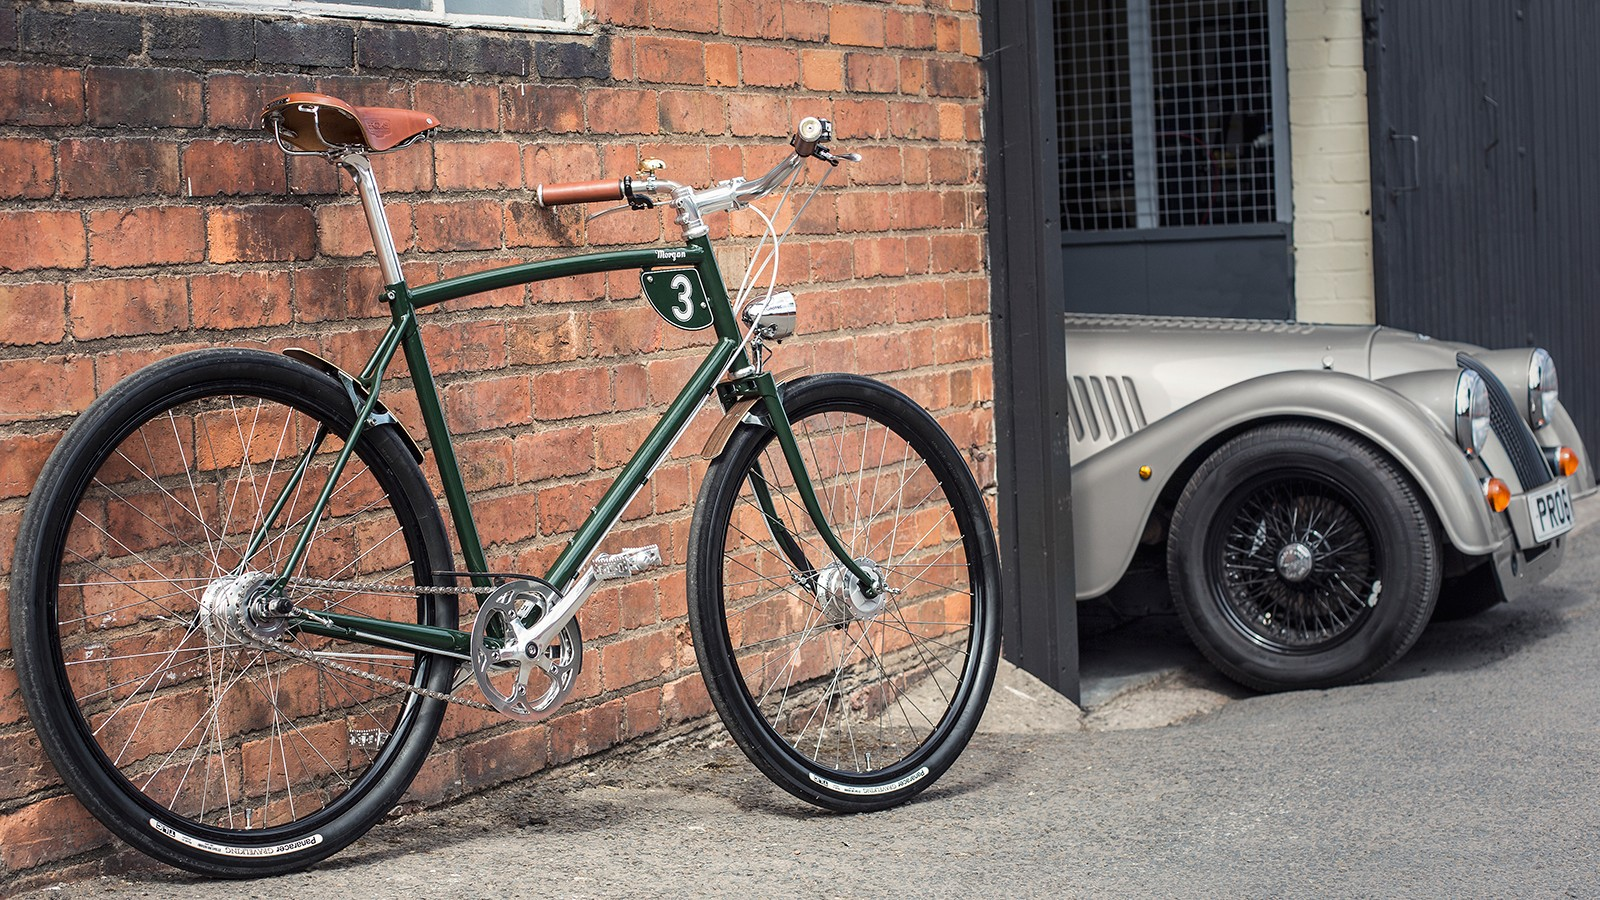 Two British icons, Pashley Cycles and Morgan Motor Company, are collaborating on a range of handcrafted bikes